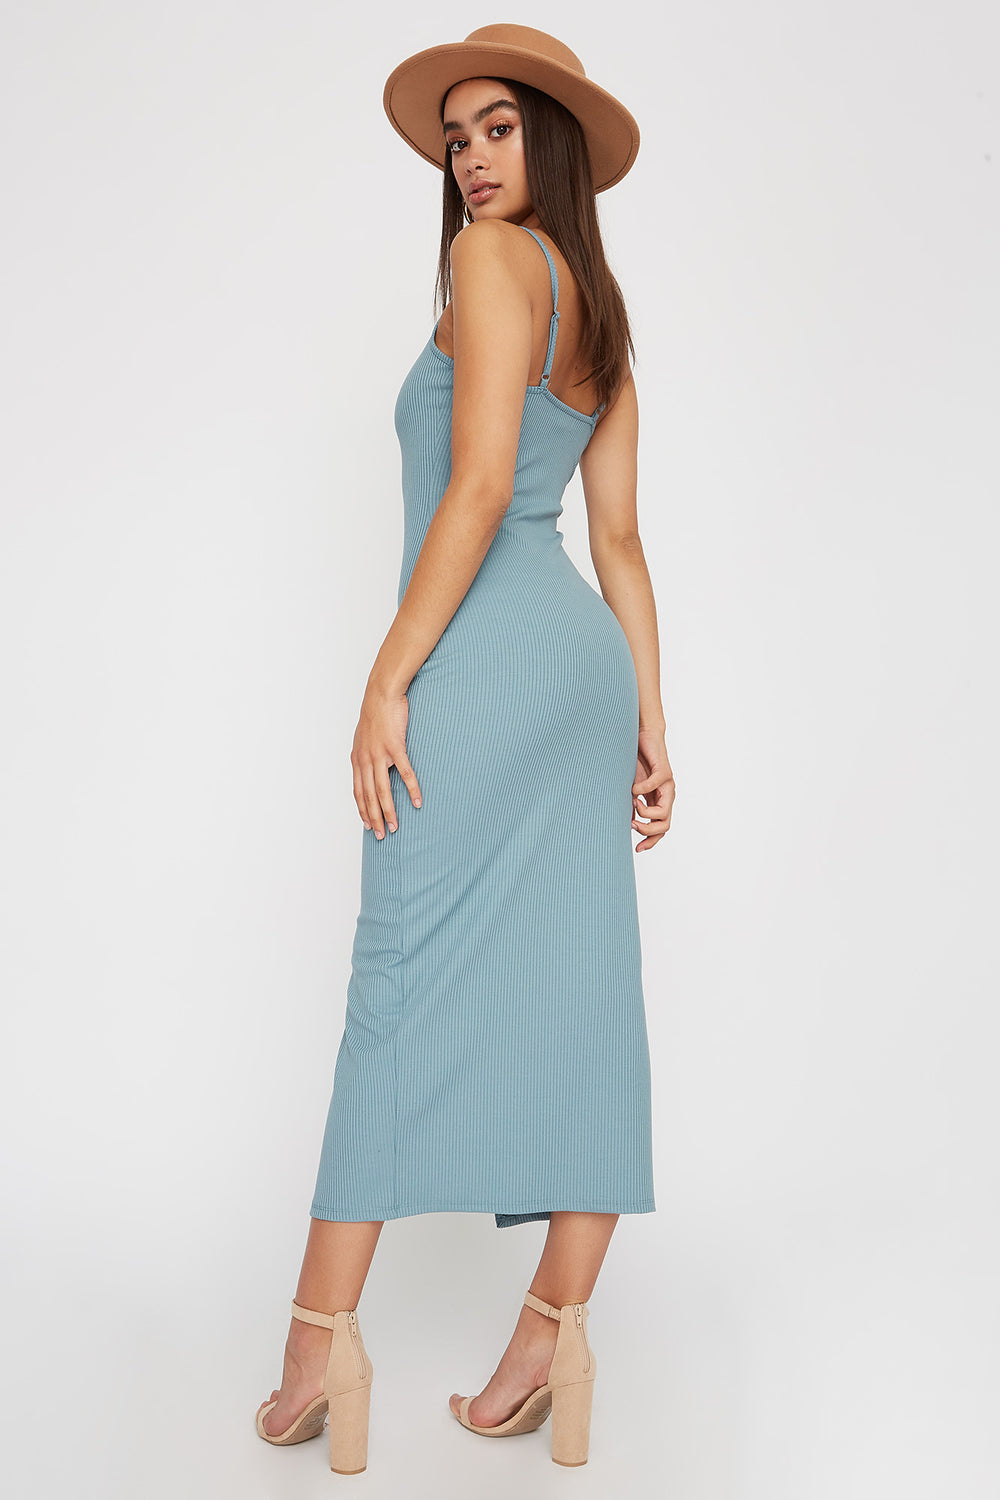 Women Dresses Ribbed Button Cut Out Sleeveless Midi Dress Light Blue